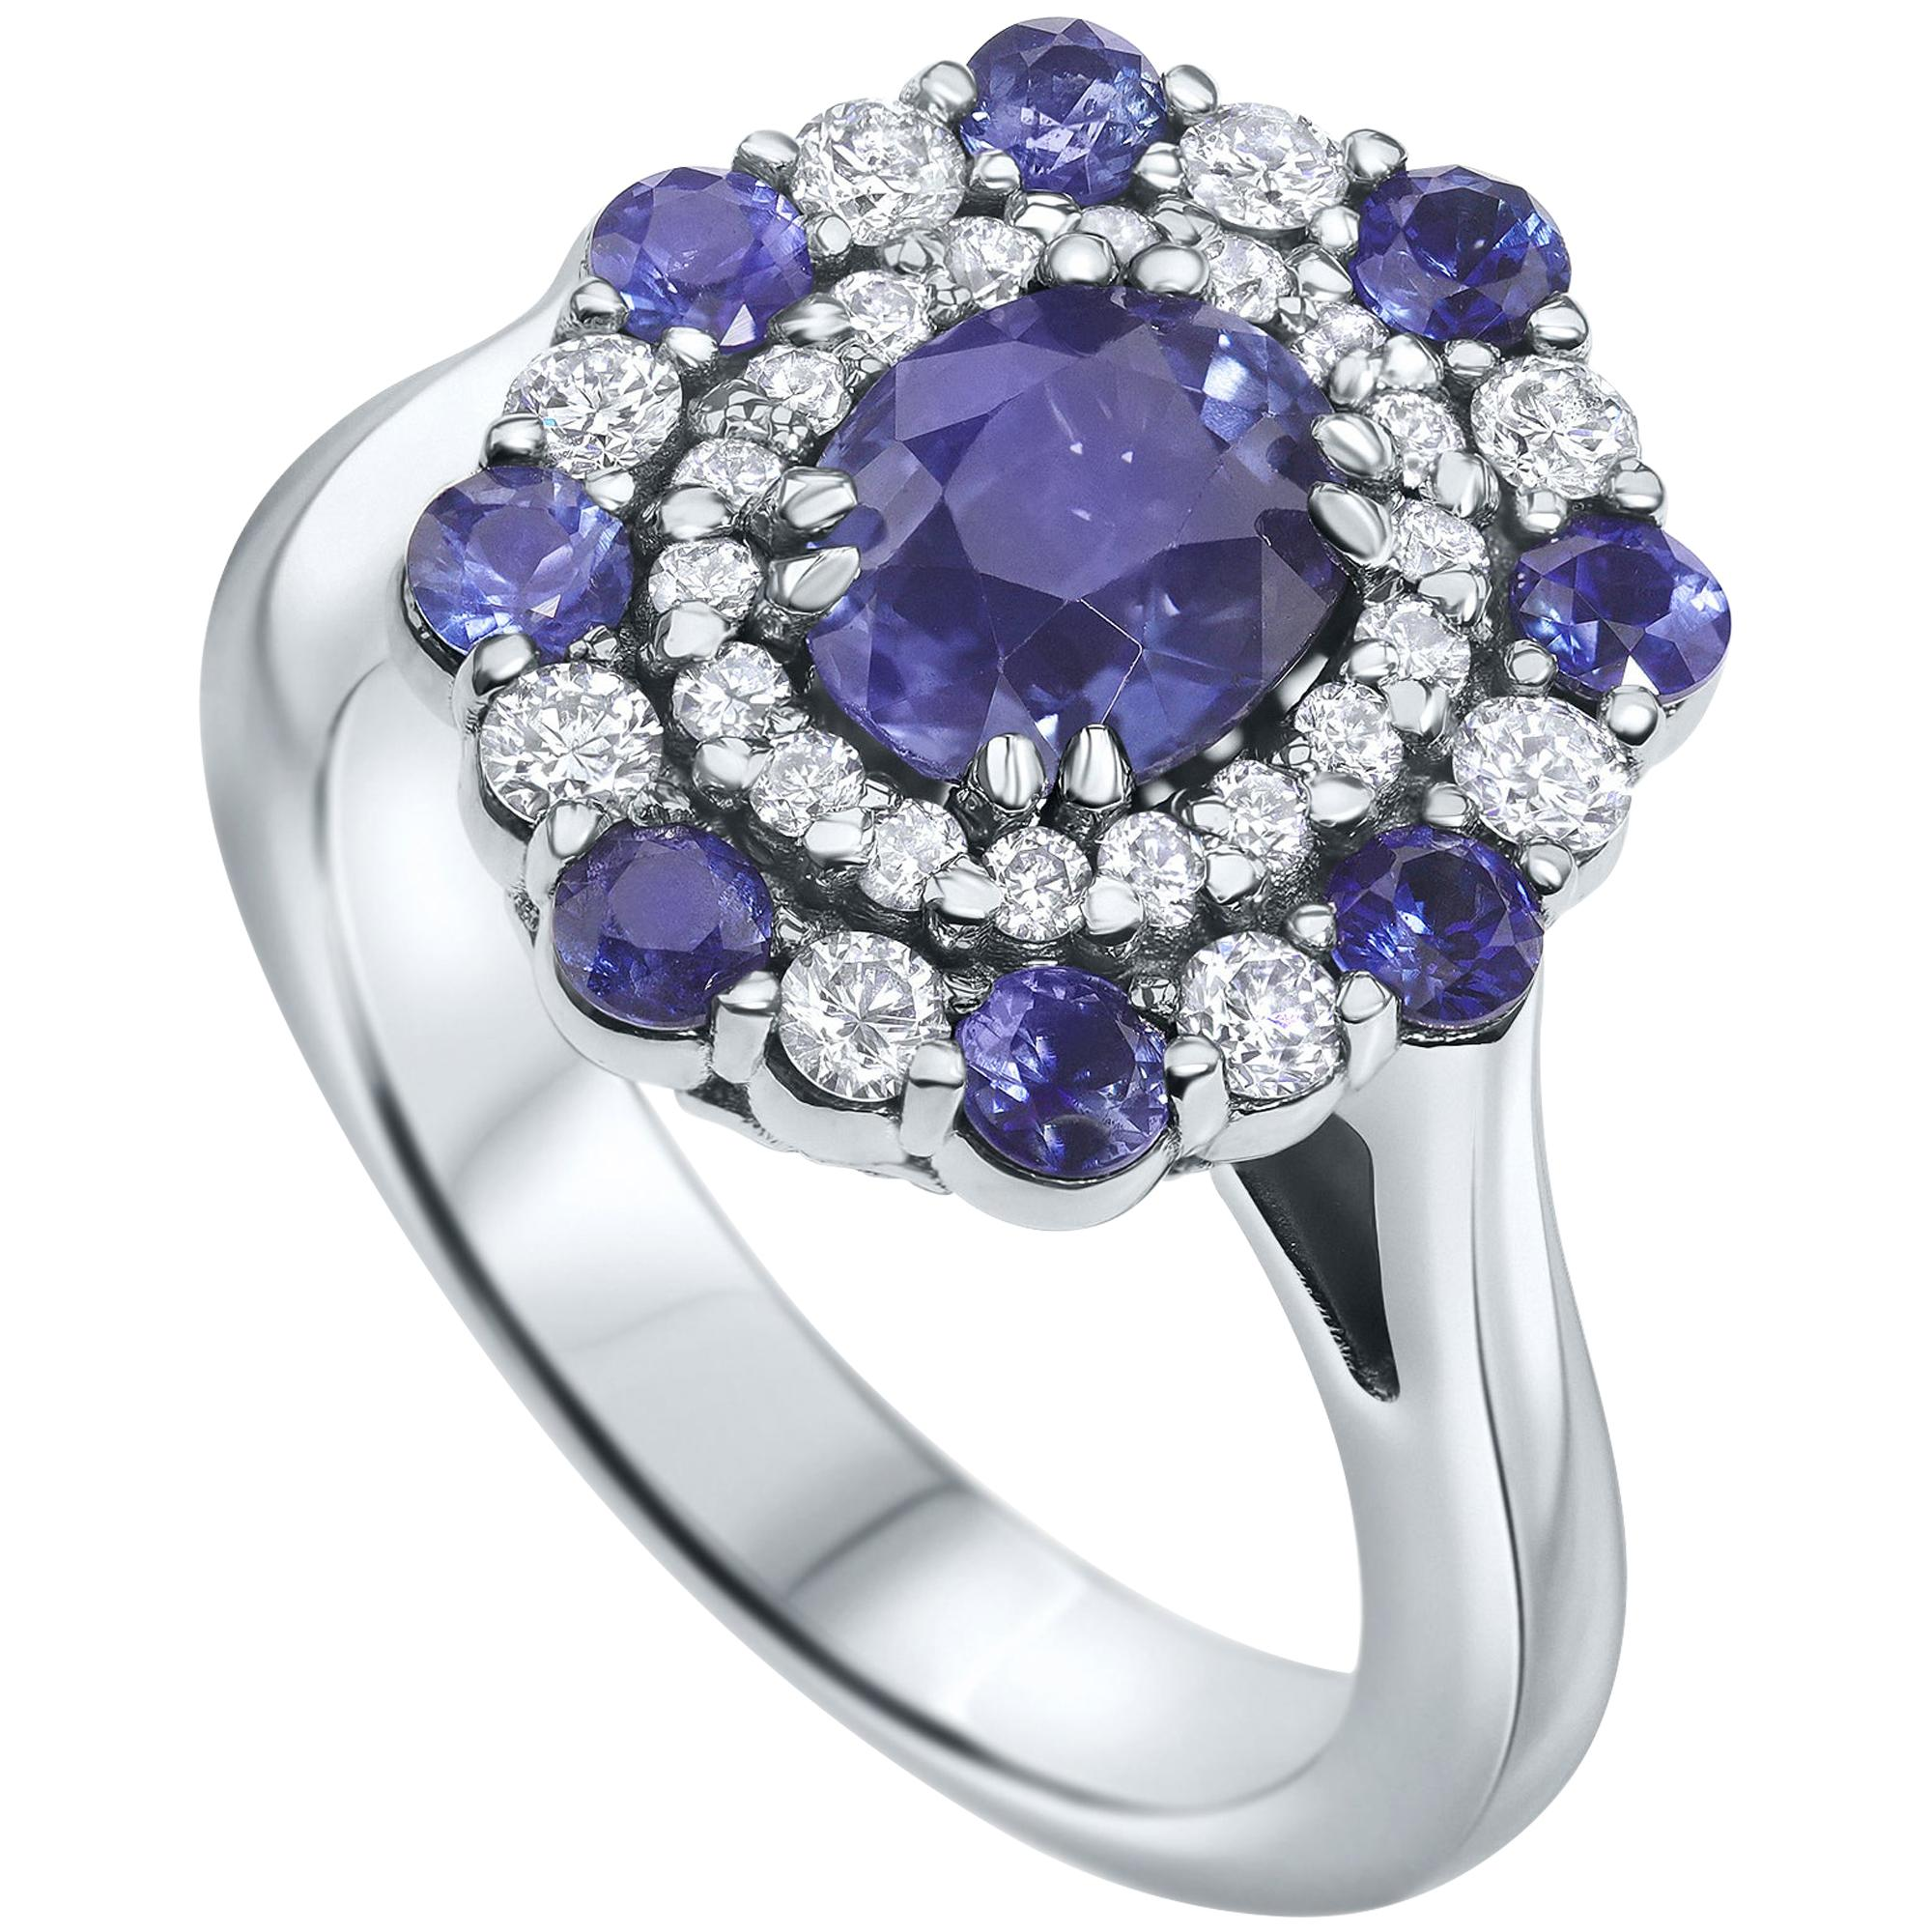 2.50 Carat GIA Certified Natural Blue Sapphire and Diamonds Ring - Shlomit Rogel